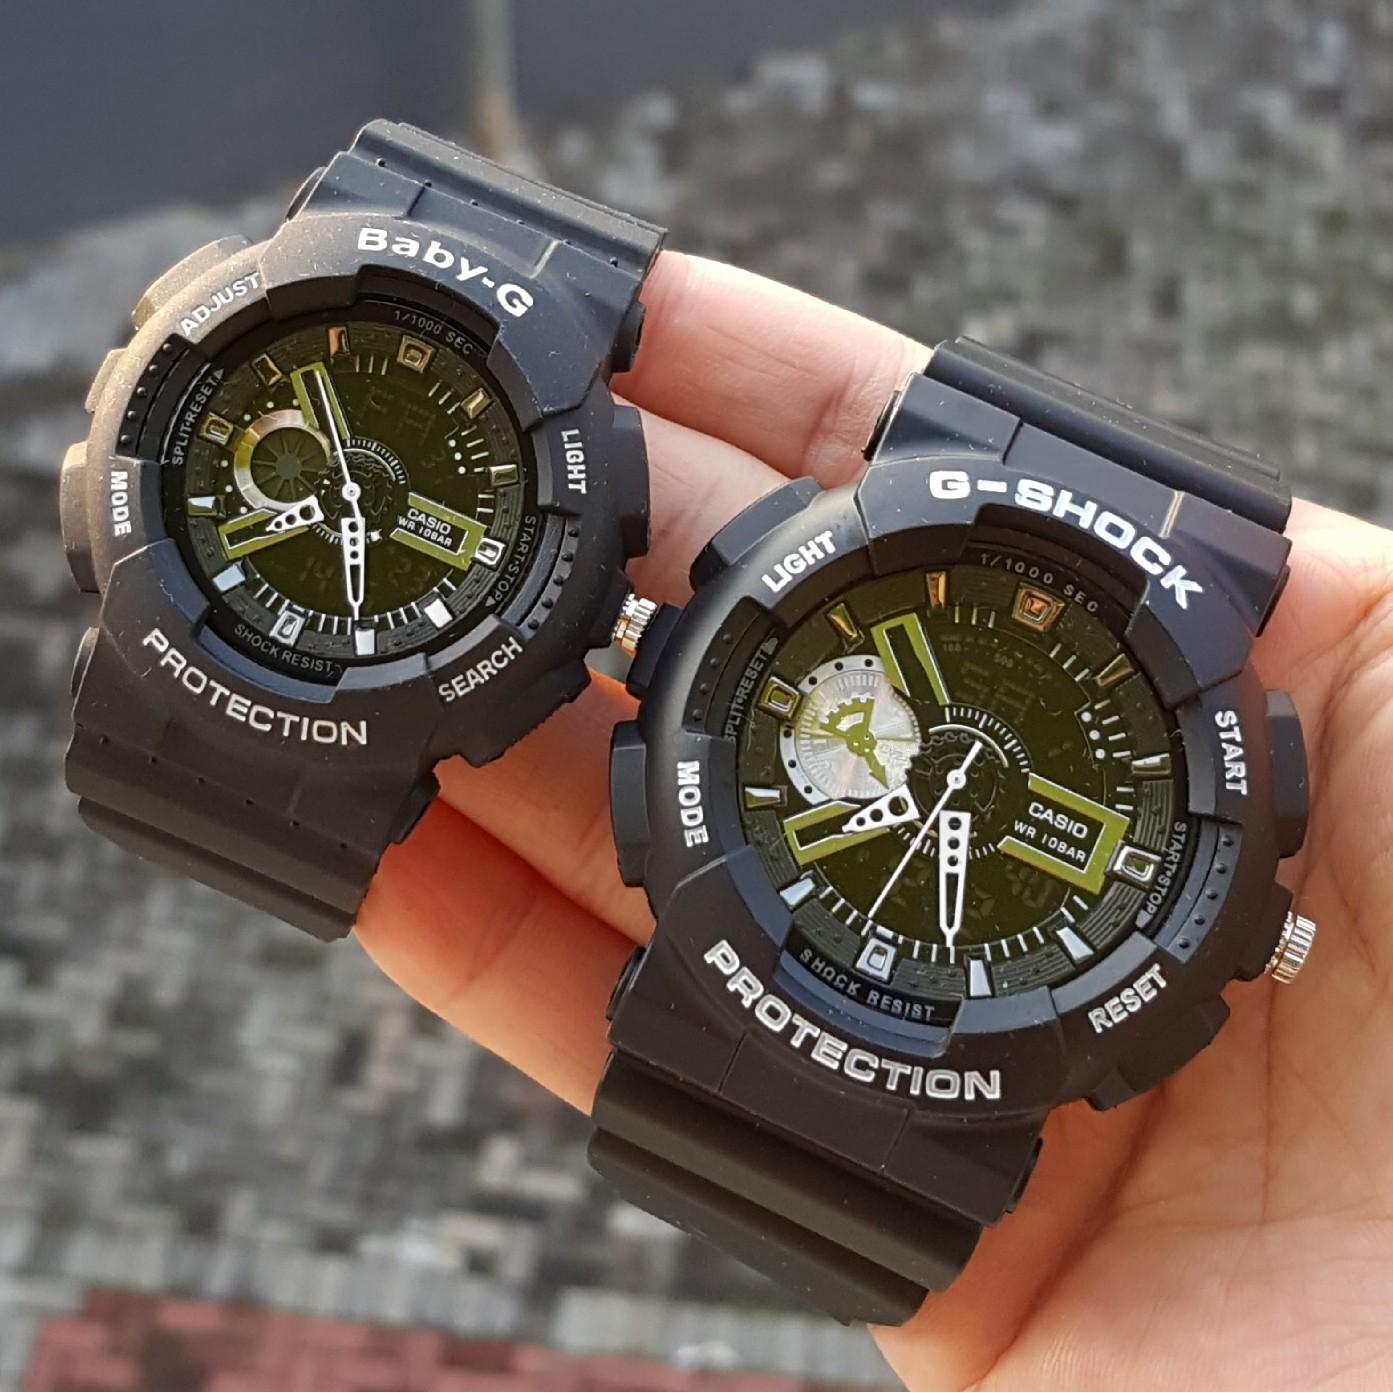 Jam Tangan Couple G-shock Ga110 Black List White Premium  a87b51c536